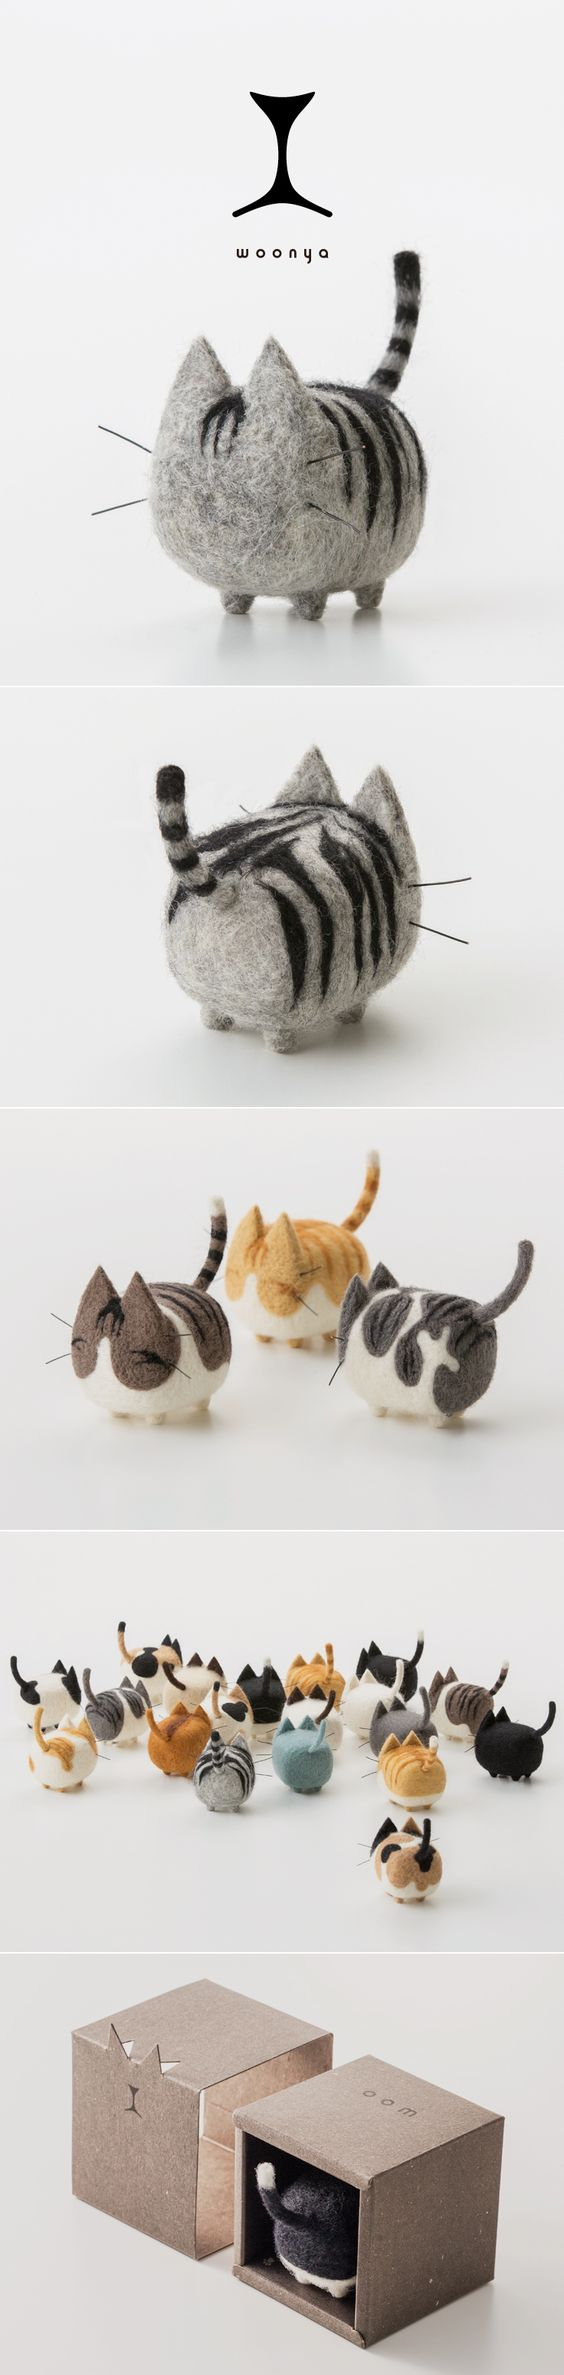 felt-animals-art-1